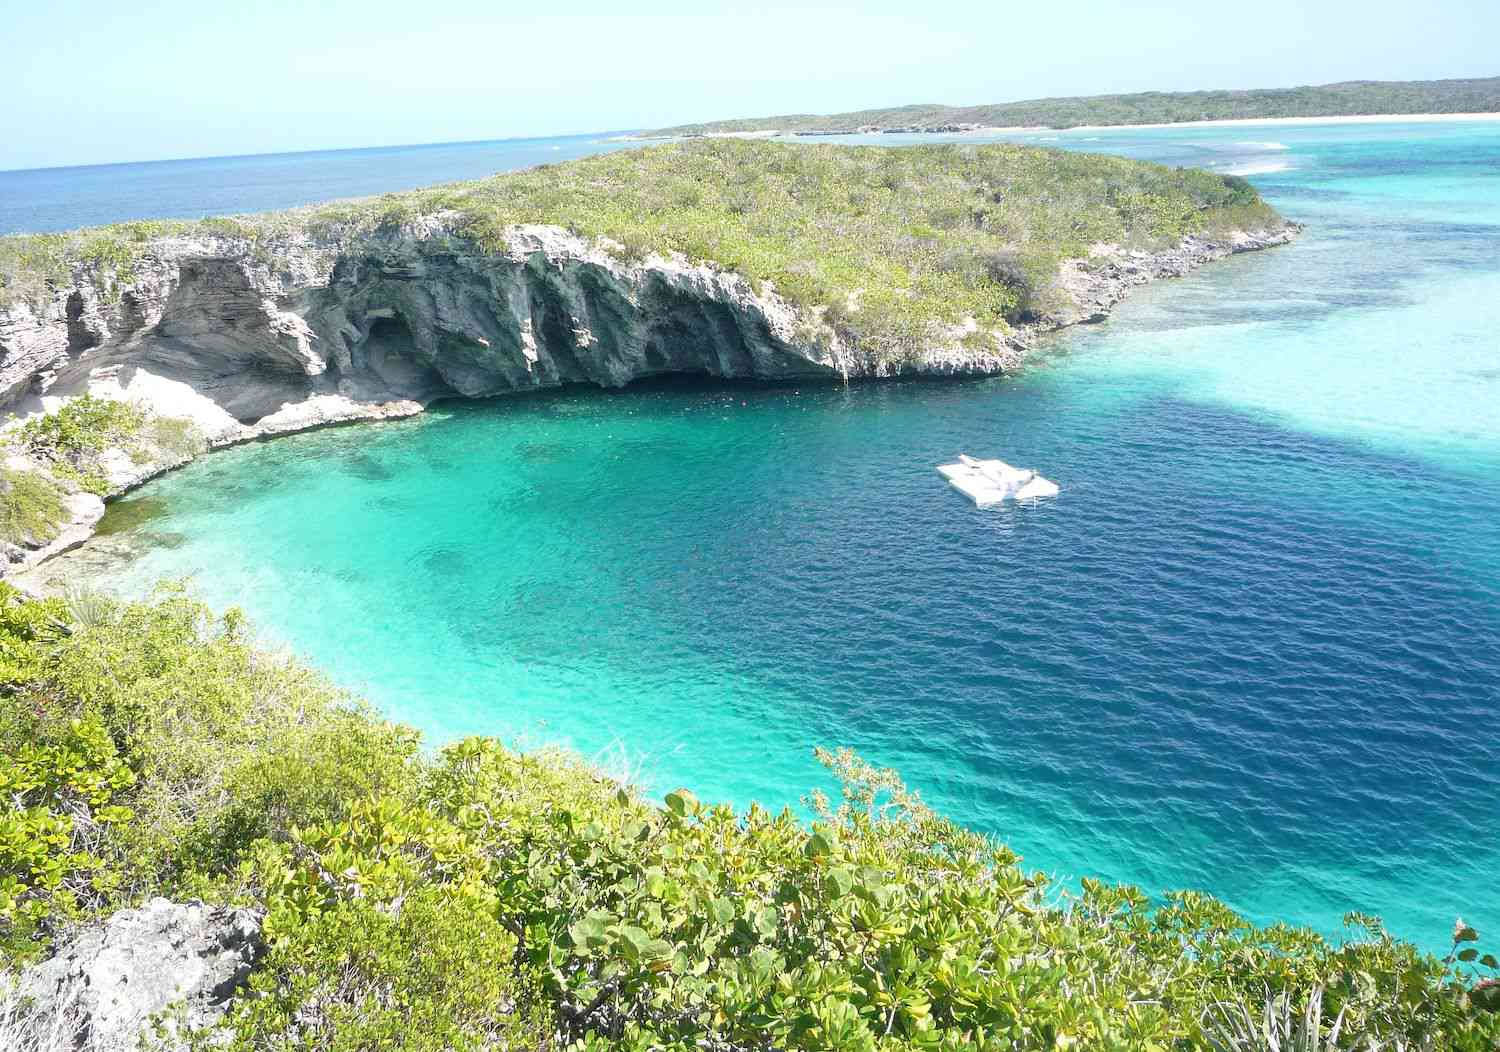 The clear turquoise water of Dean's Blue Hole in the Bahamas